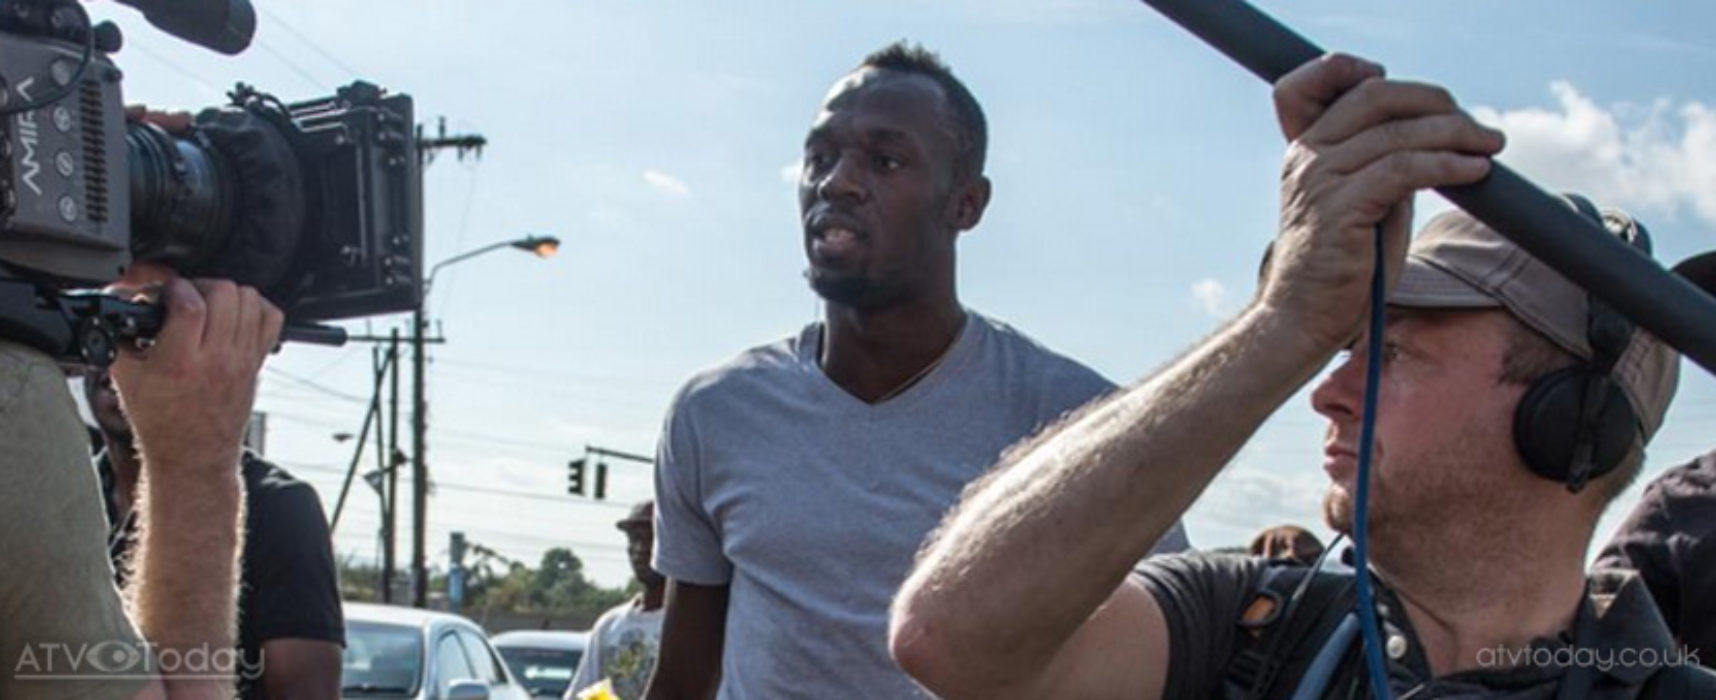 Old Trafford Soccer Aid match to feature Usain Bolt and Robbie Williams